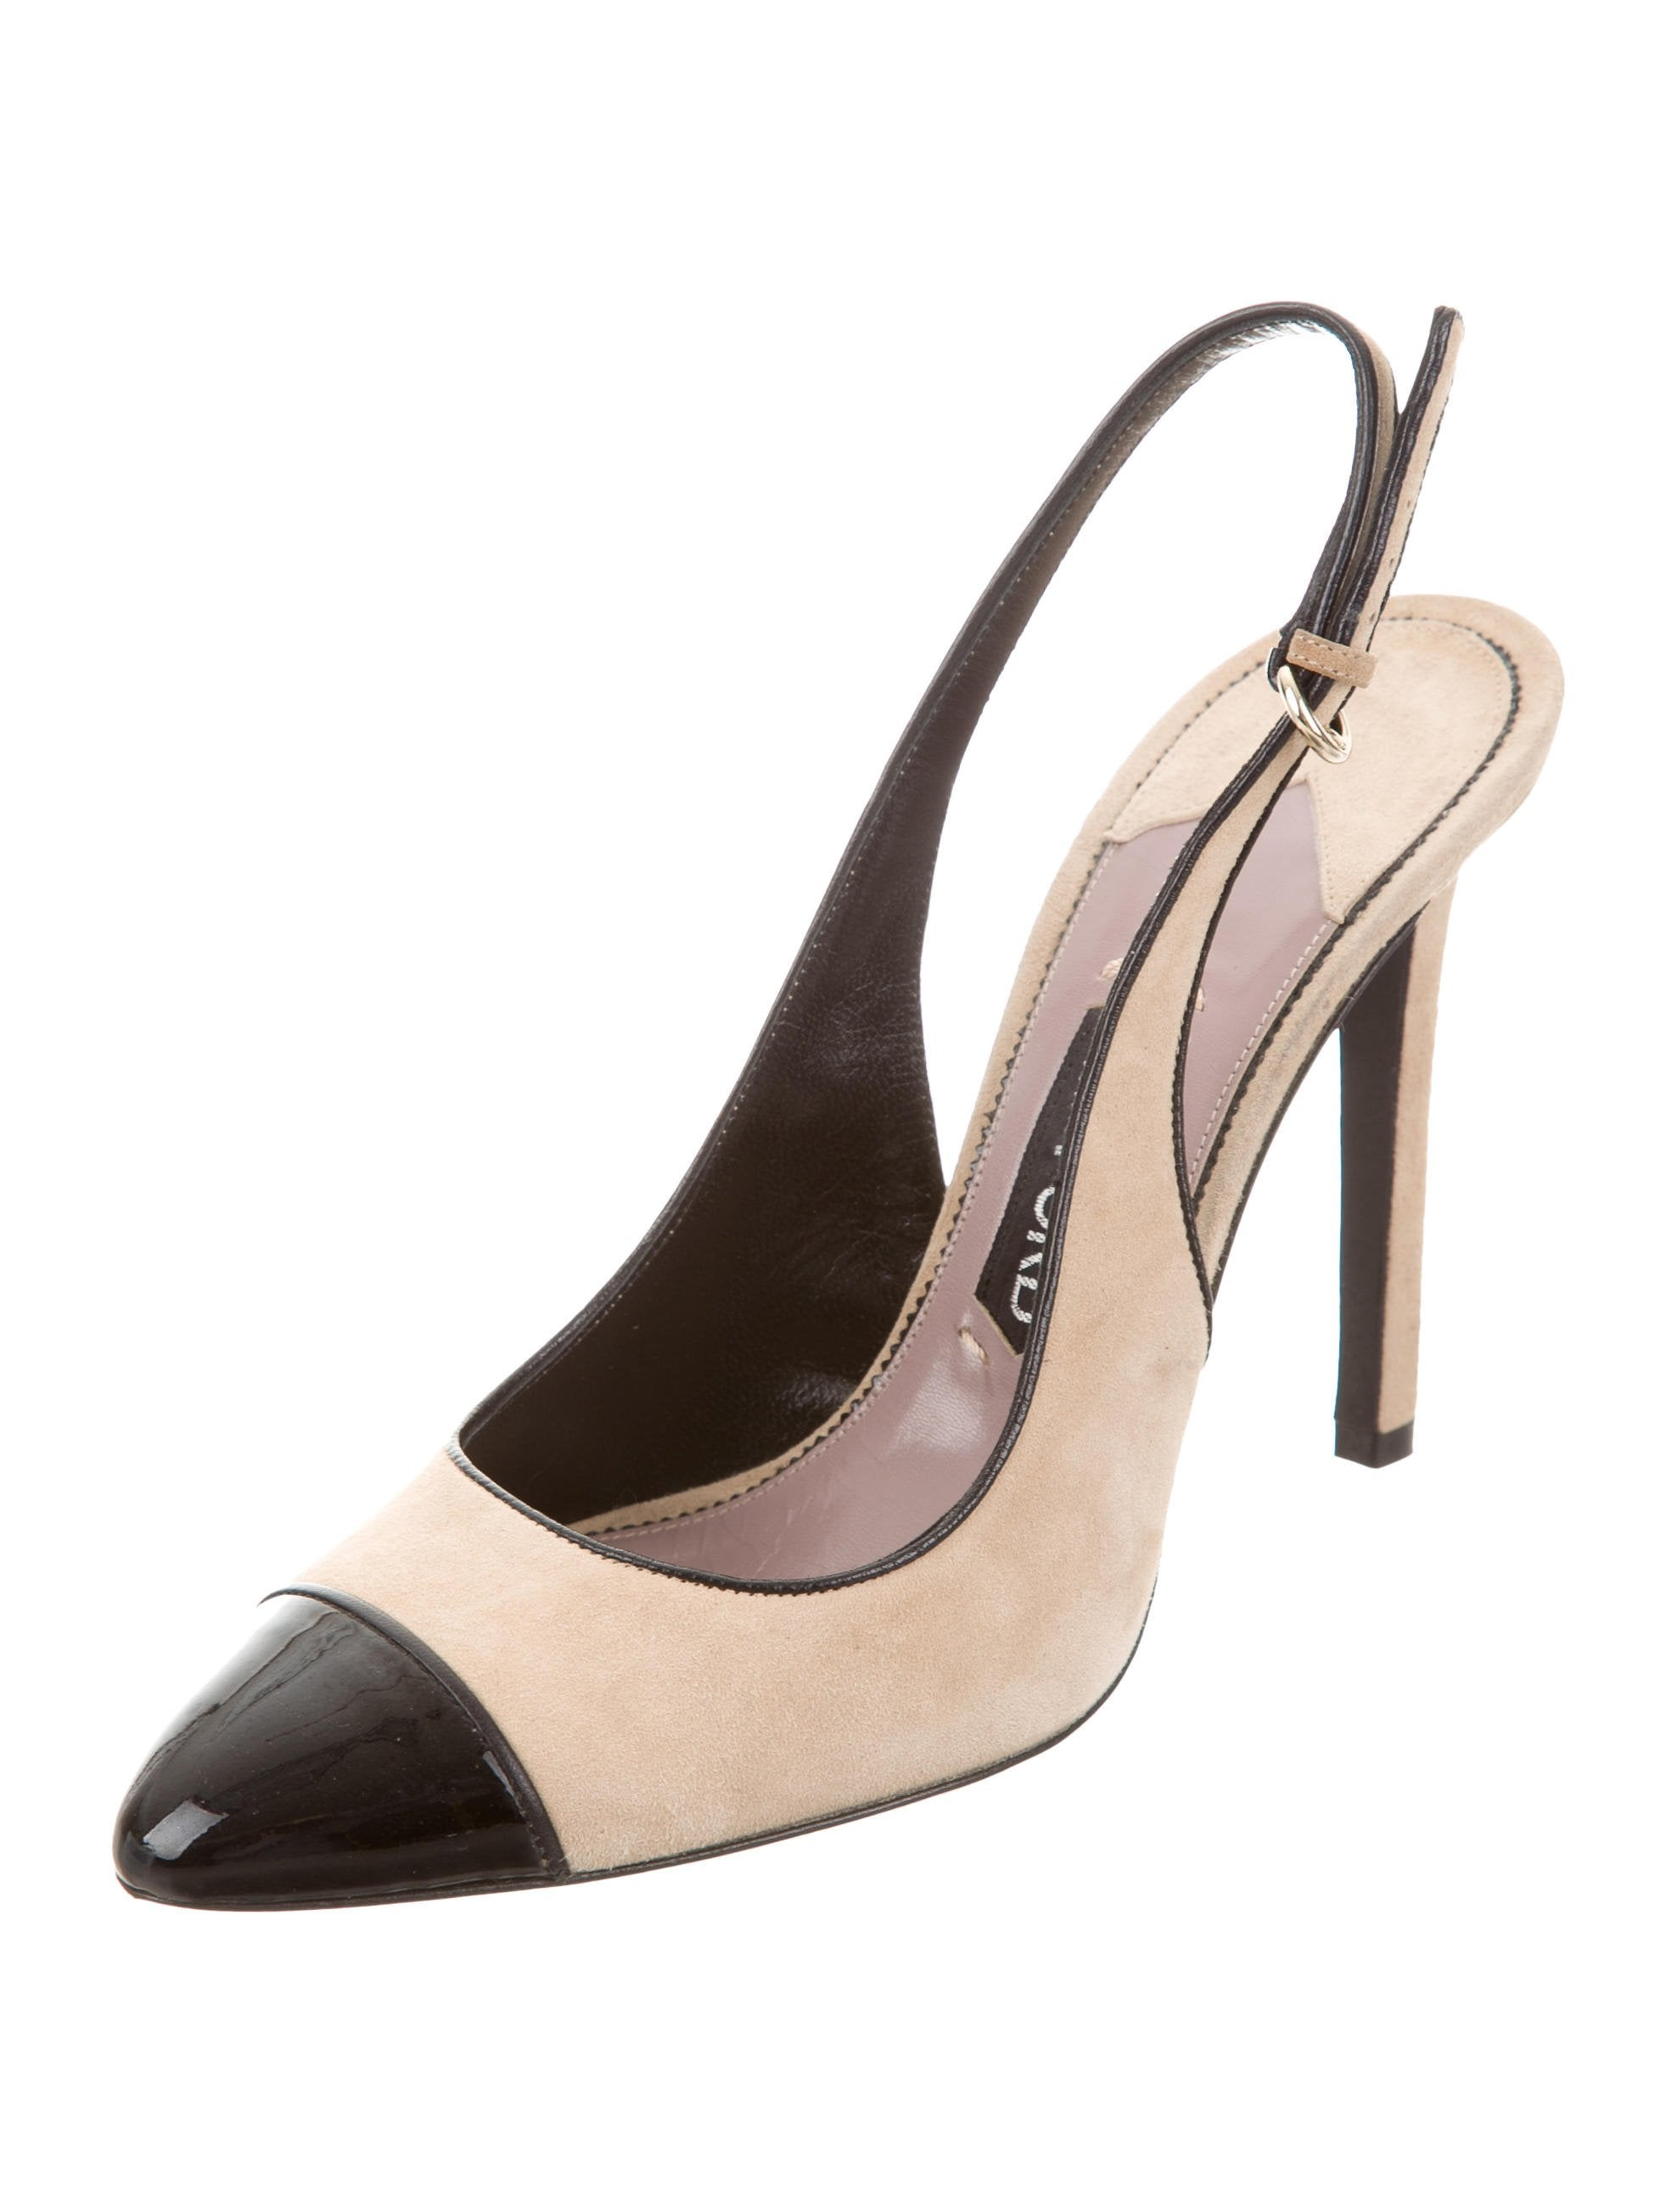 suede ford heels padlock pumps gallery shoes in product tom normal black lyst